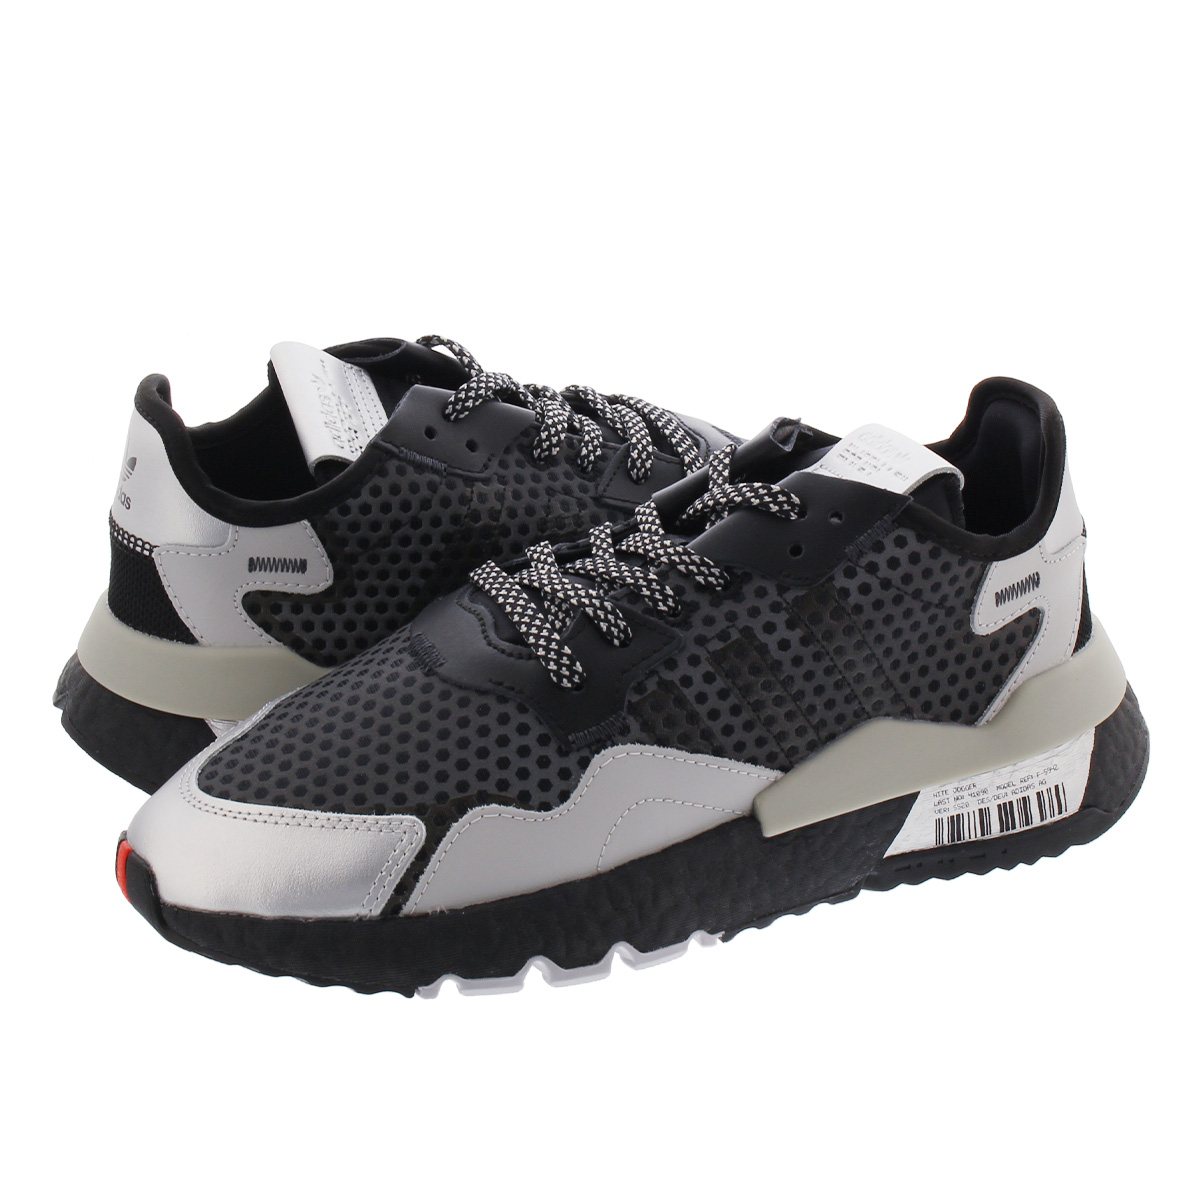 adidas NITE JOGGER アディダス ナイト ジョガー CORE BLACK/SILVER METALLIC/GREY TWO ef5407